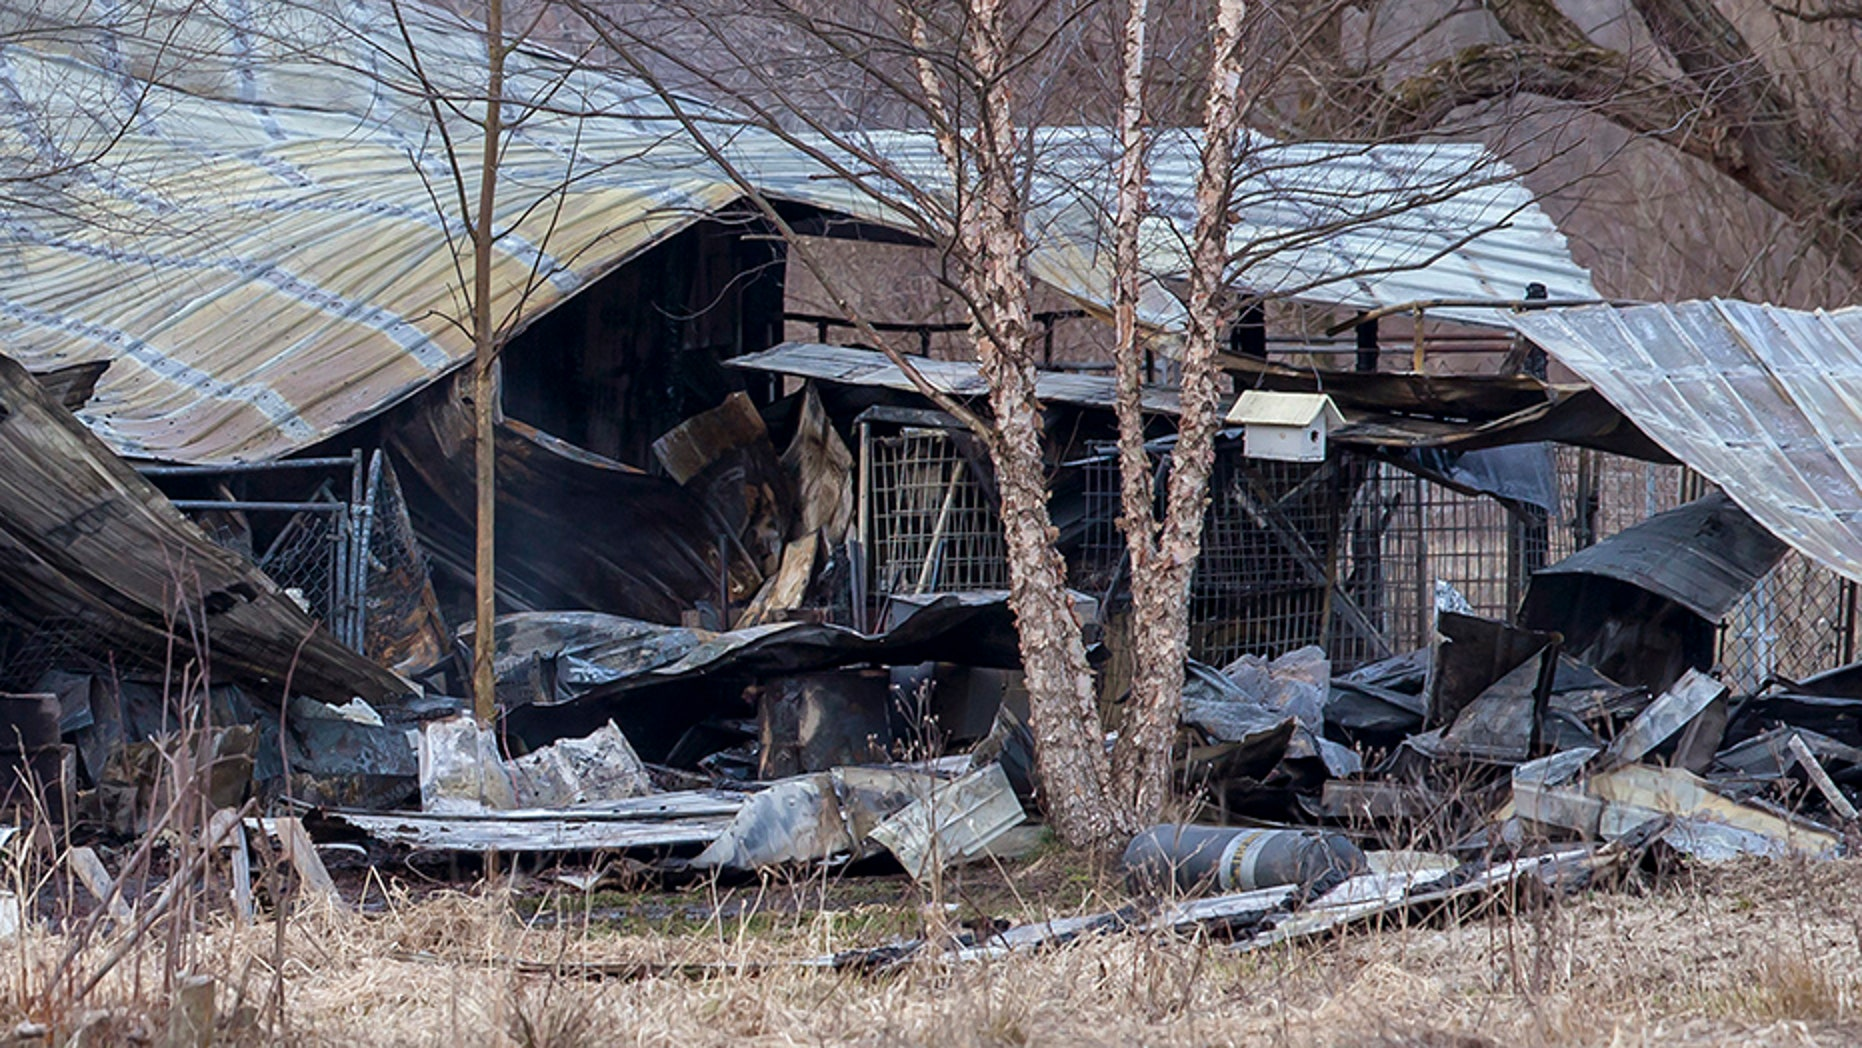 Authorities say over two dozen dogs are believed to have died in the early morning fire.